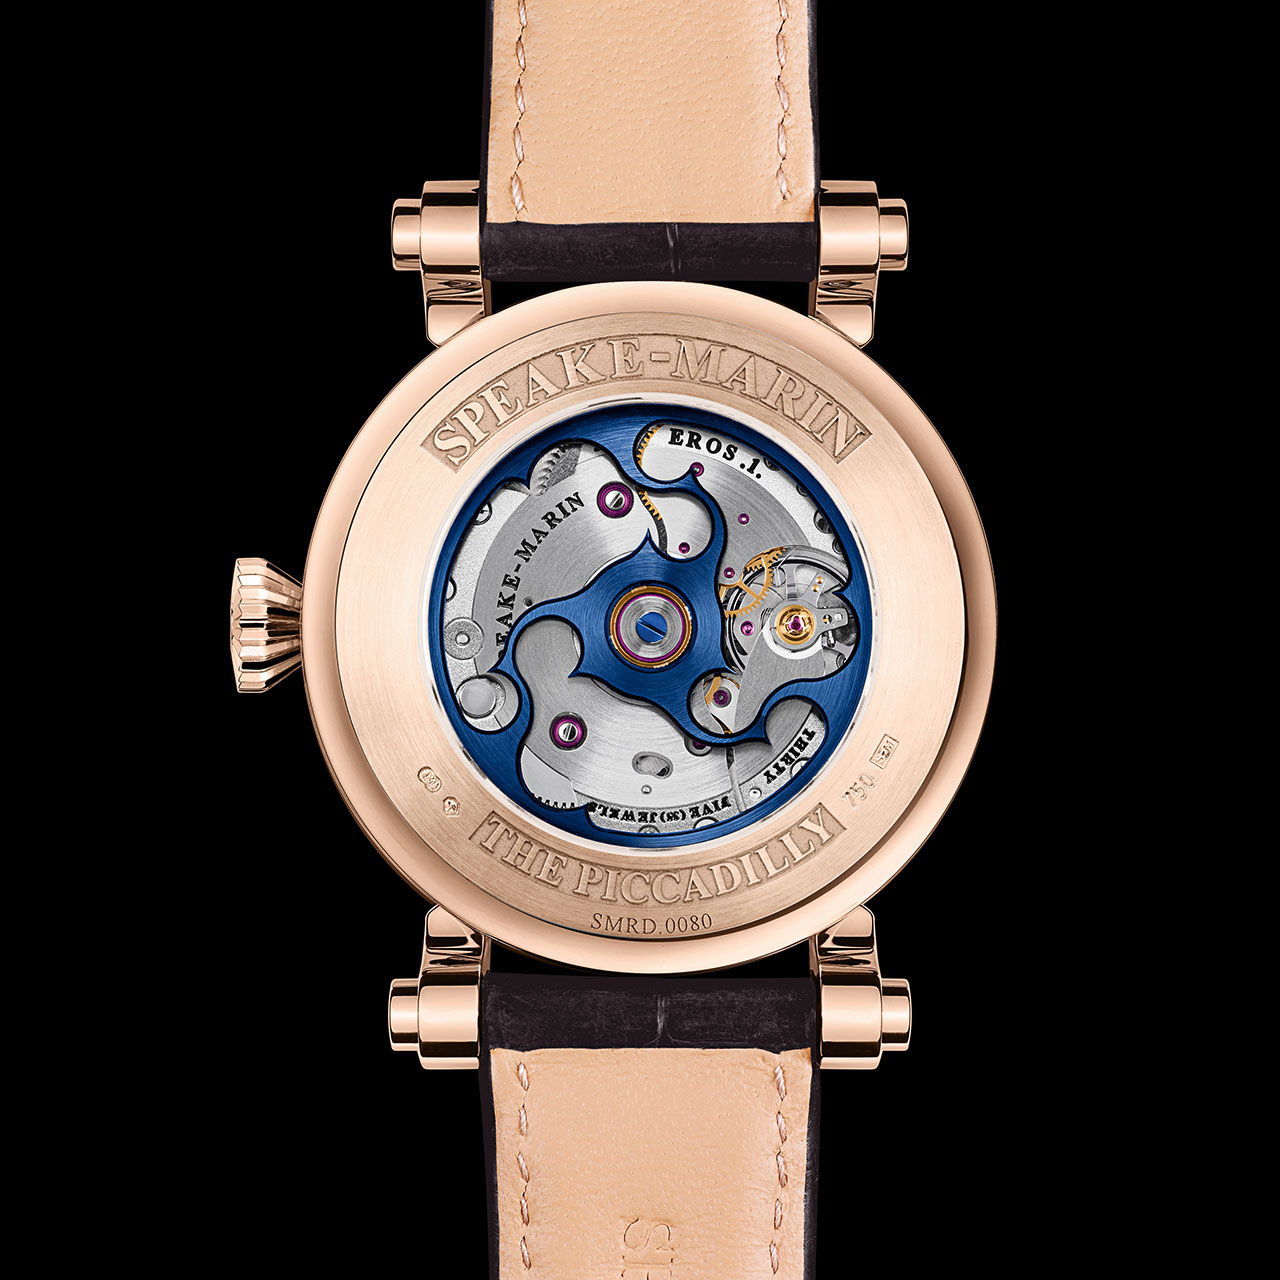 Speake-Marin Diamond Resilience Automatic Watch back